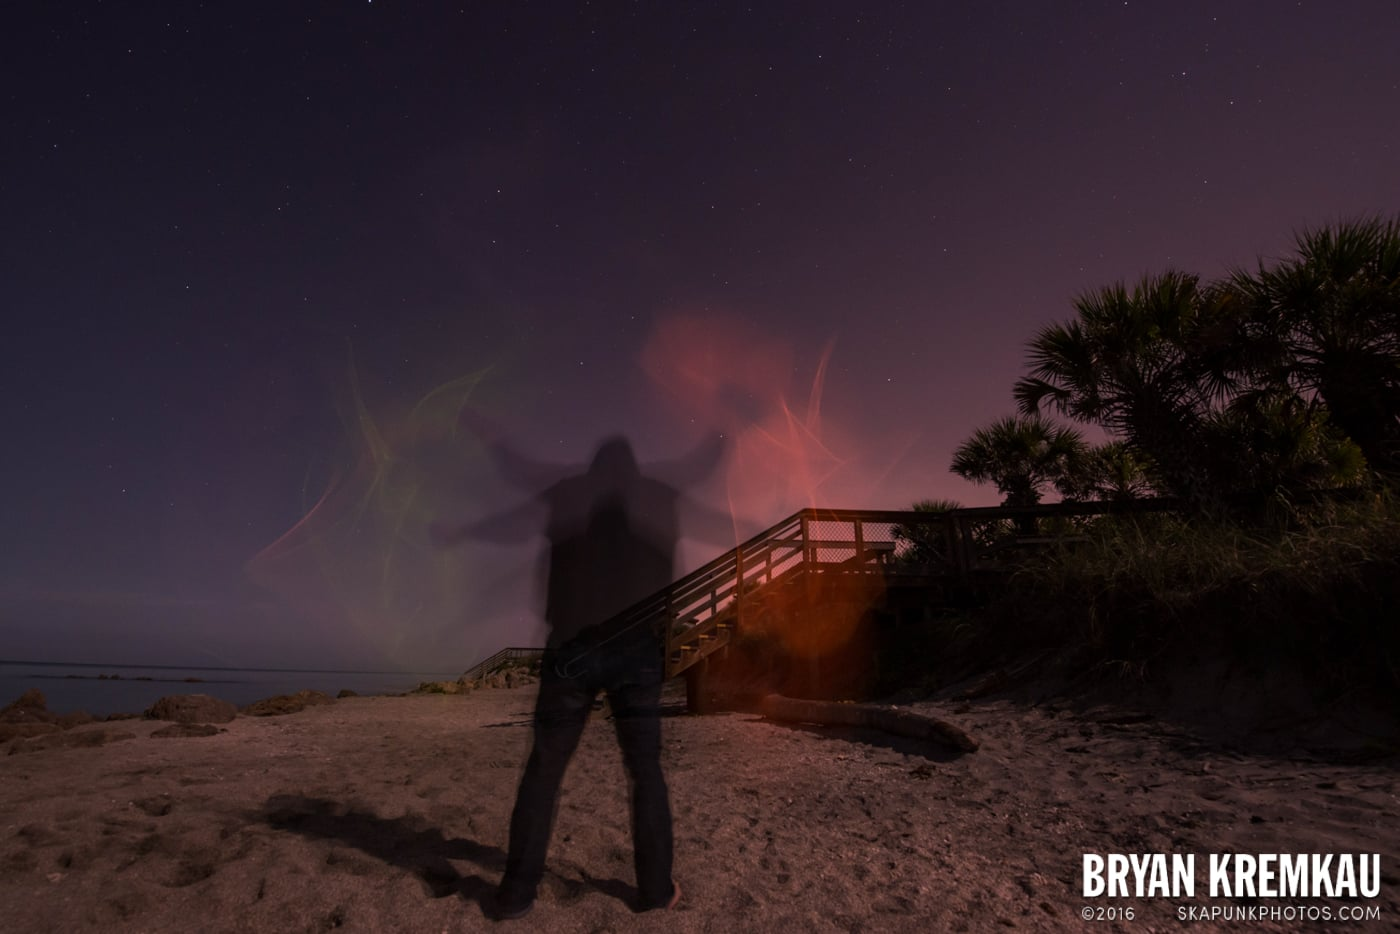 Sunsets, Astrophotography & Birds @ Venice, Florida - 10.25.14 - 11.5.14 (35)